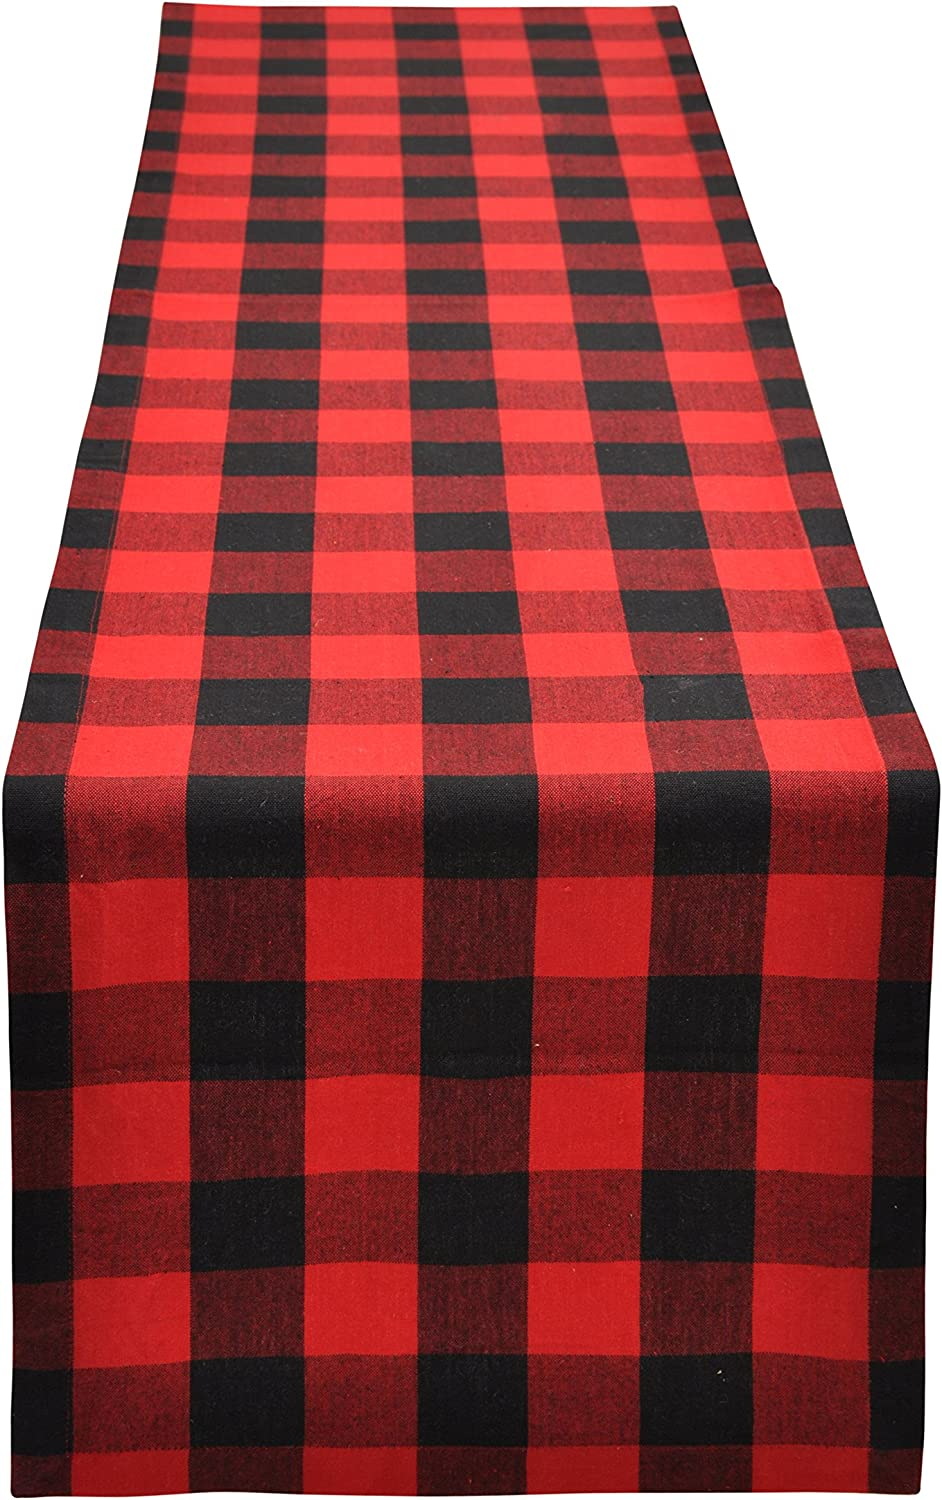 Yourtablecloth Buffalo Plaid Checkered Table Runner Trendy & Modern Plaid Design 100% Cotton Tablerunner Elegant Décor for Indoor&Outdoor Events 14 x 108 Red and Black